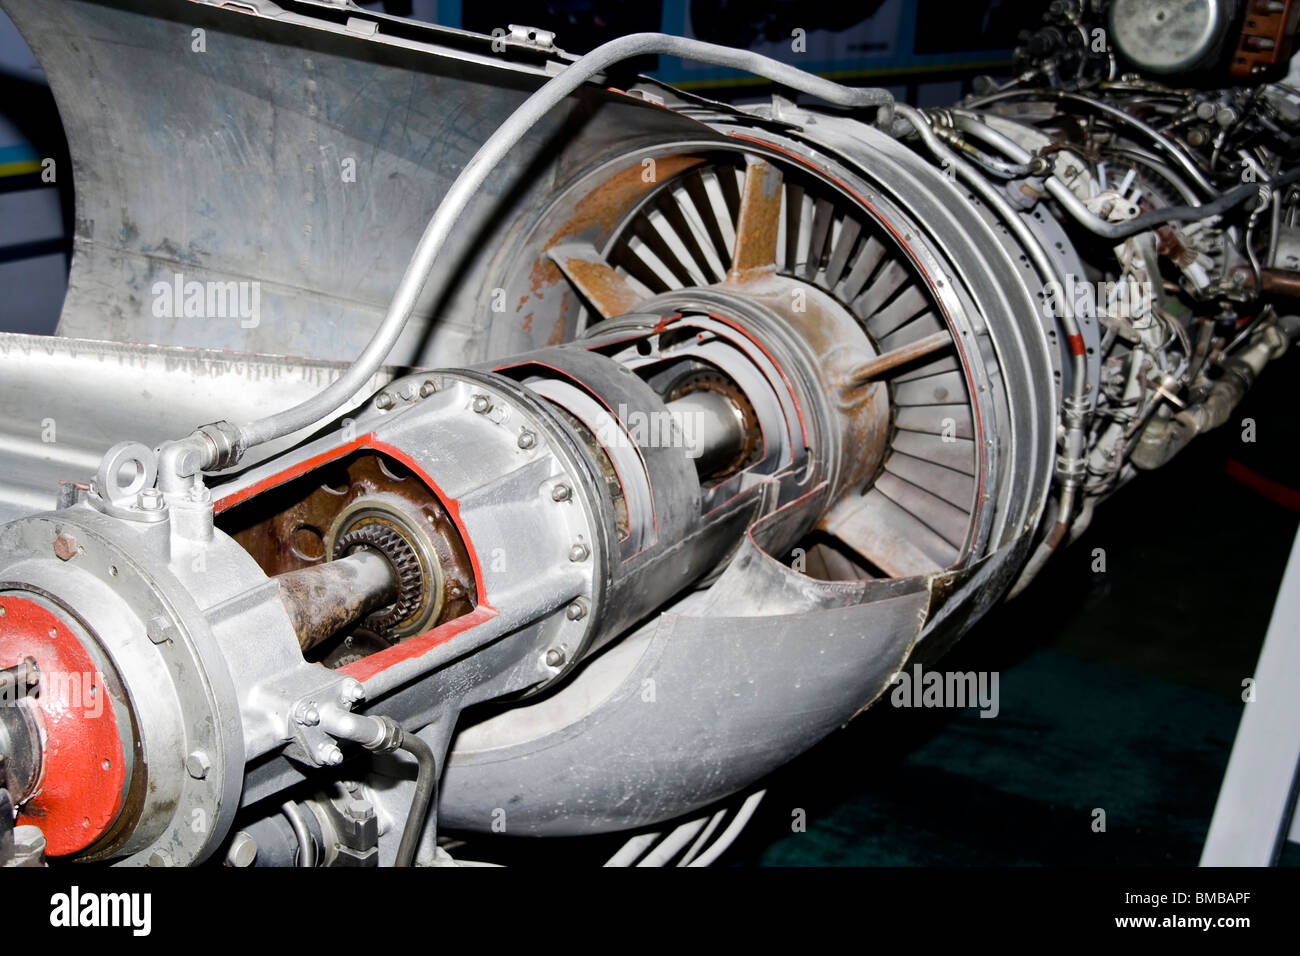 a aircraft jet engine detail in the exposition - Stock Image